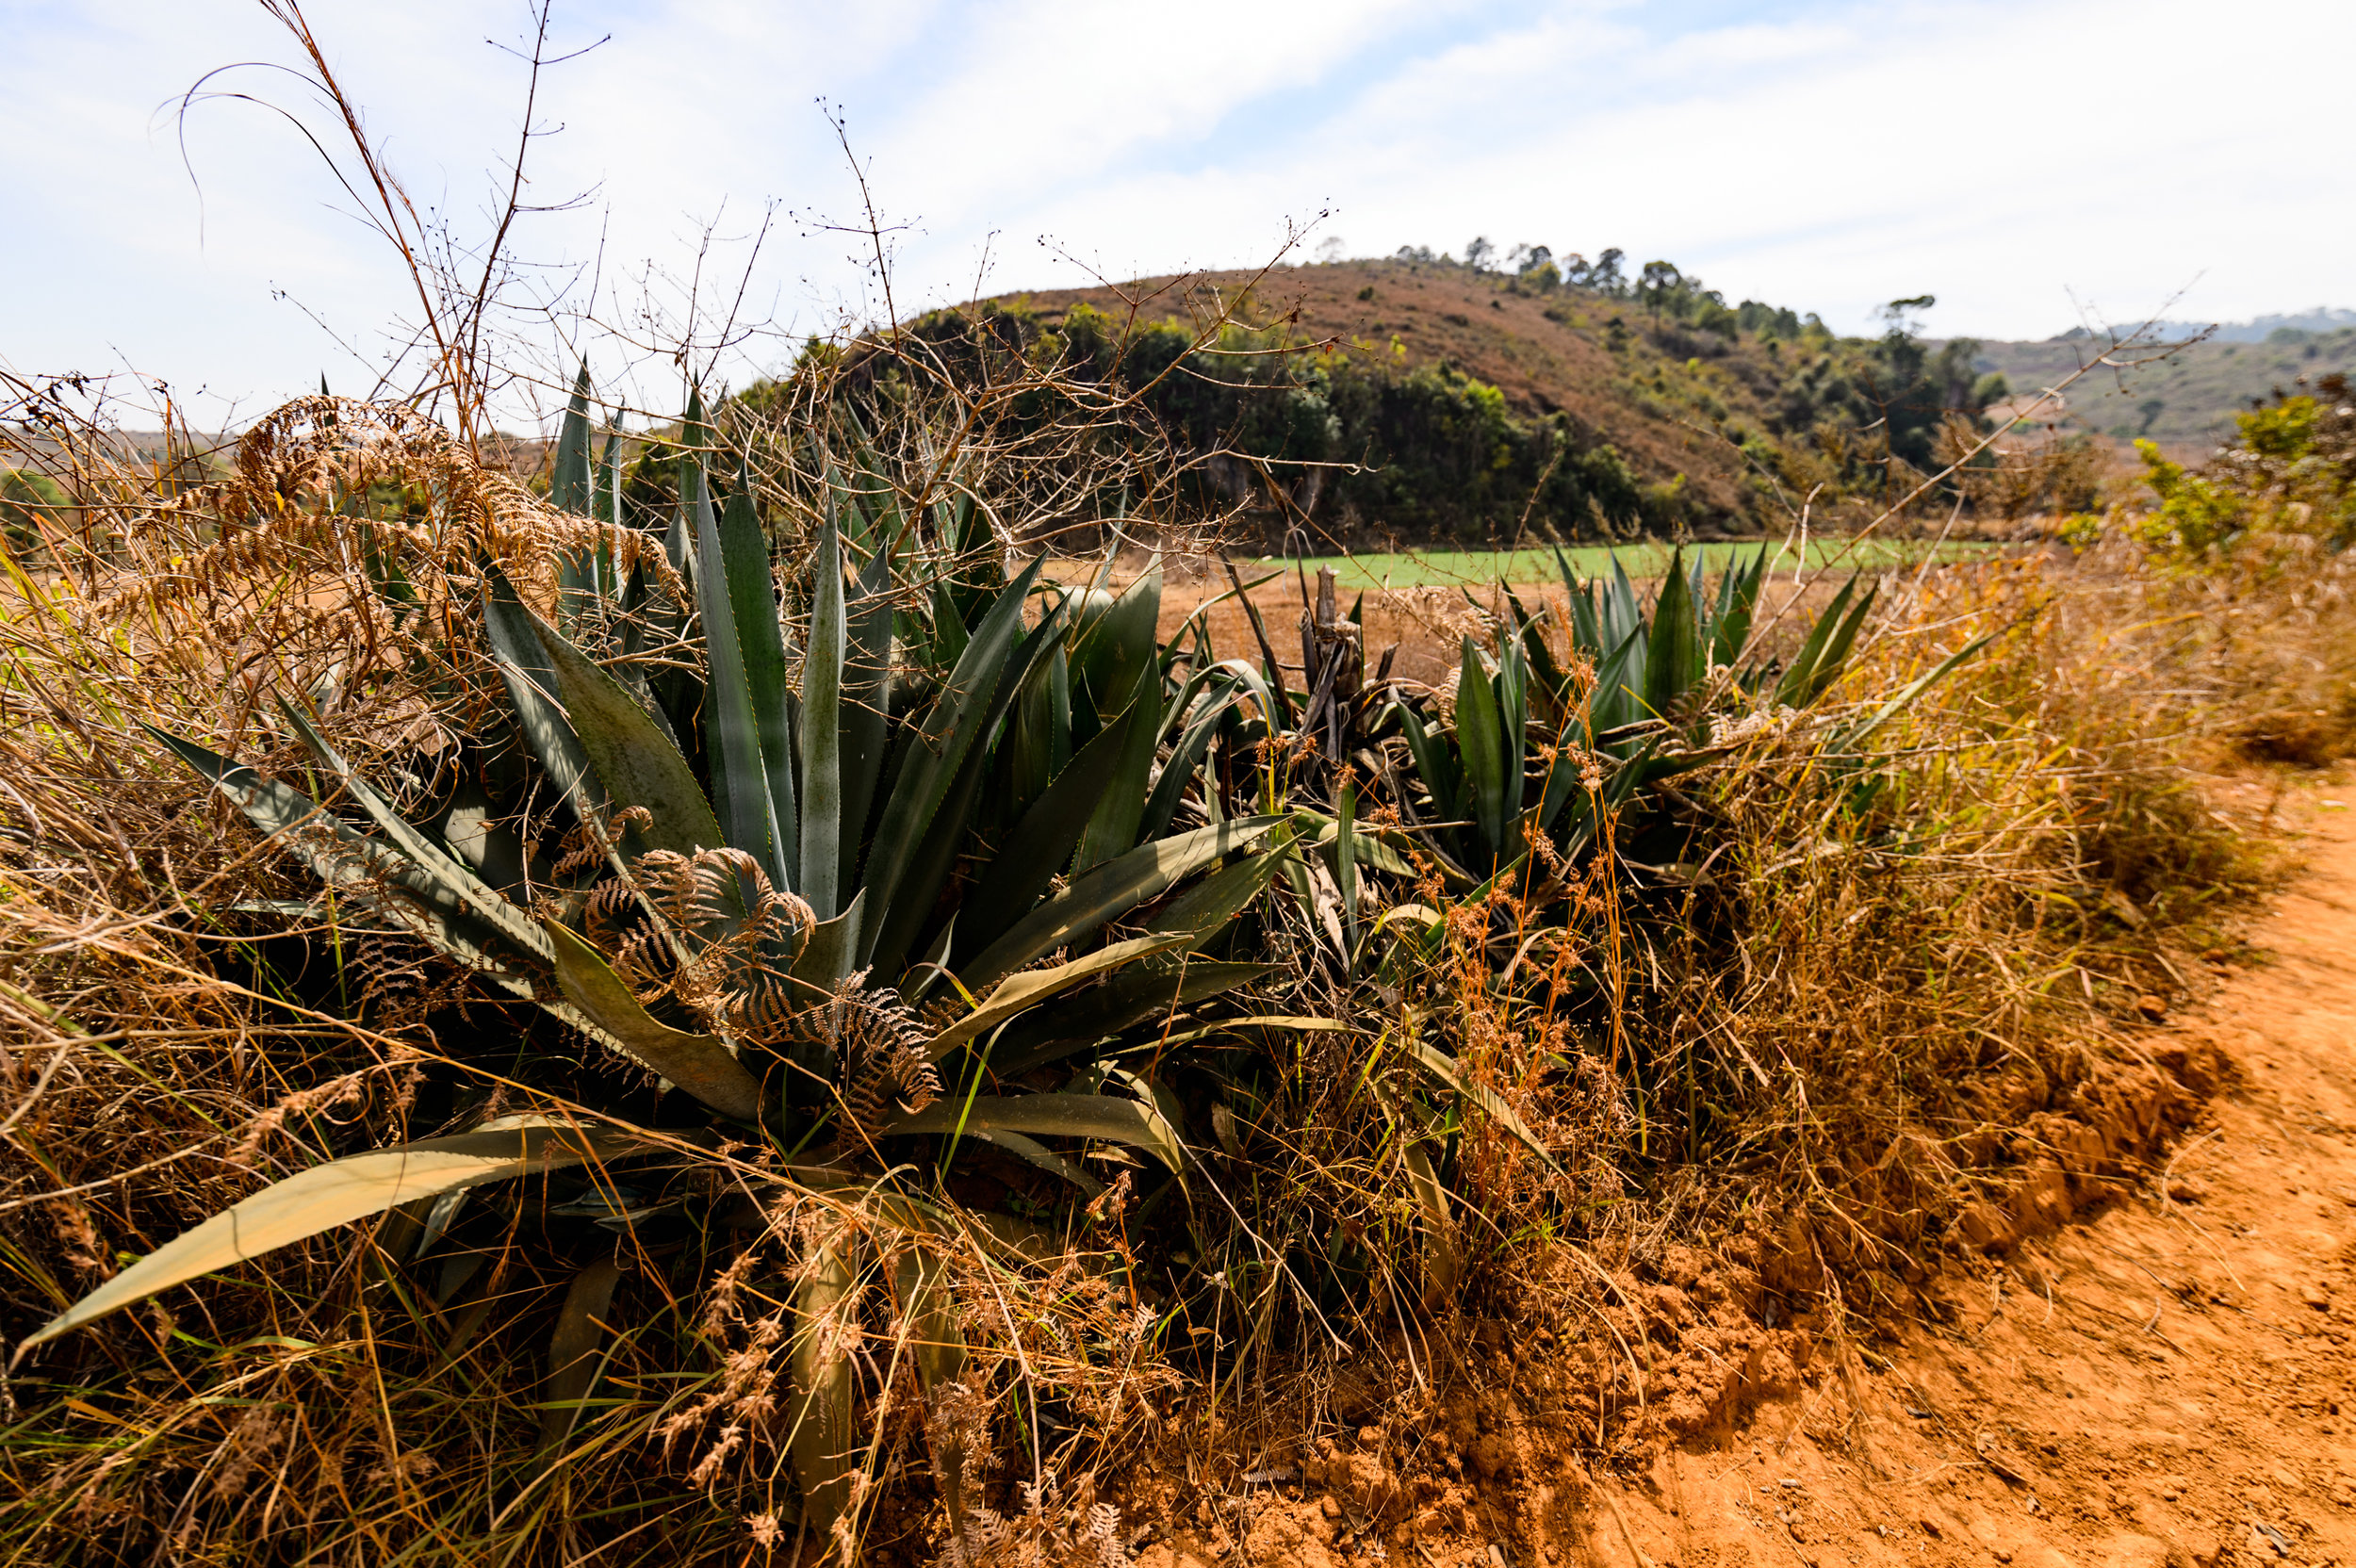 Myanmar the magical land of ...Agave? Yeah pretty much anything grows here it seems.